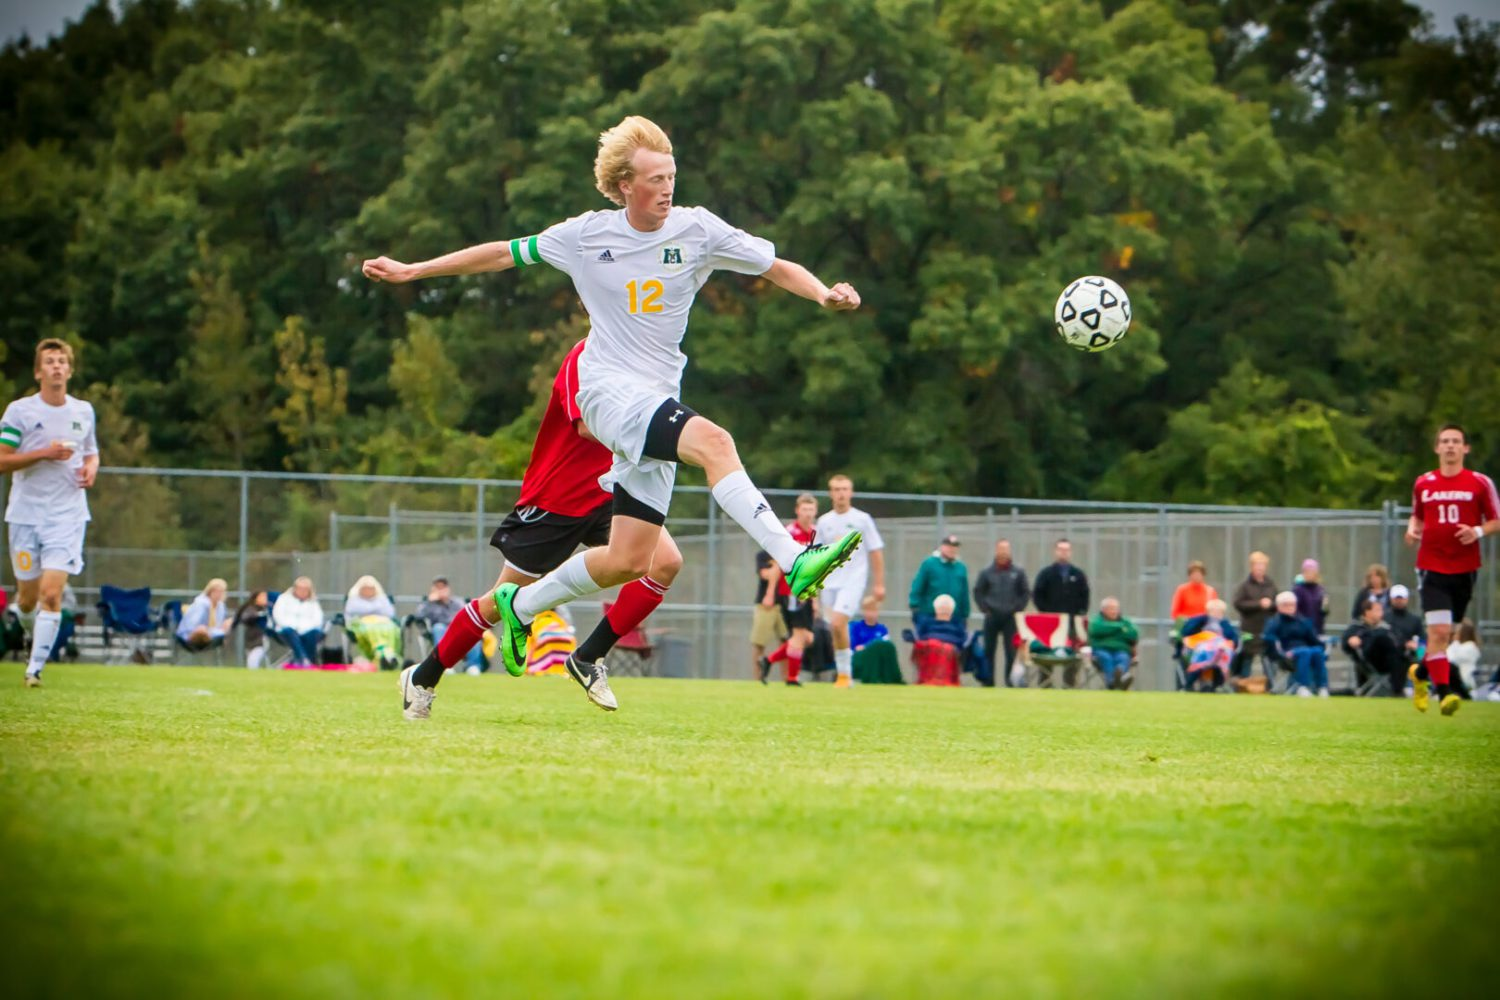 2014 boys district soccer tournament pairings, results